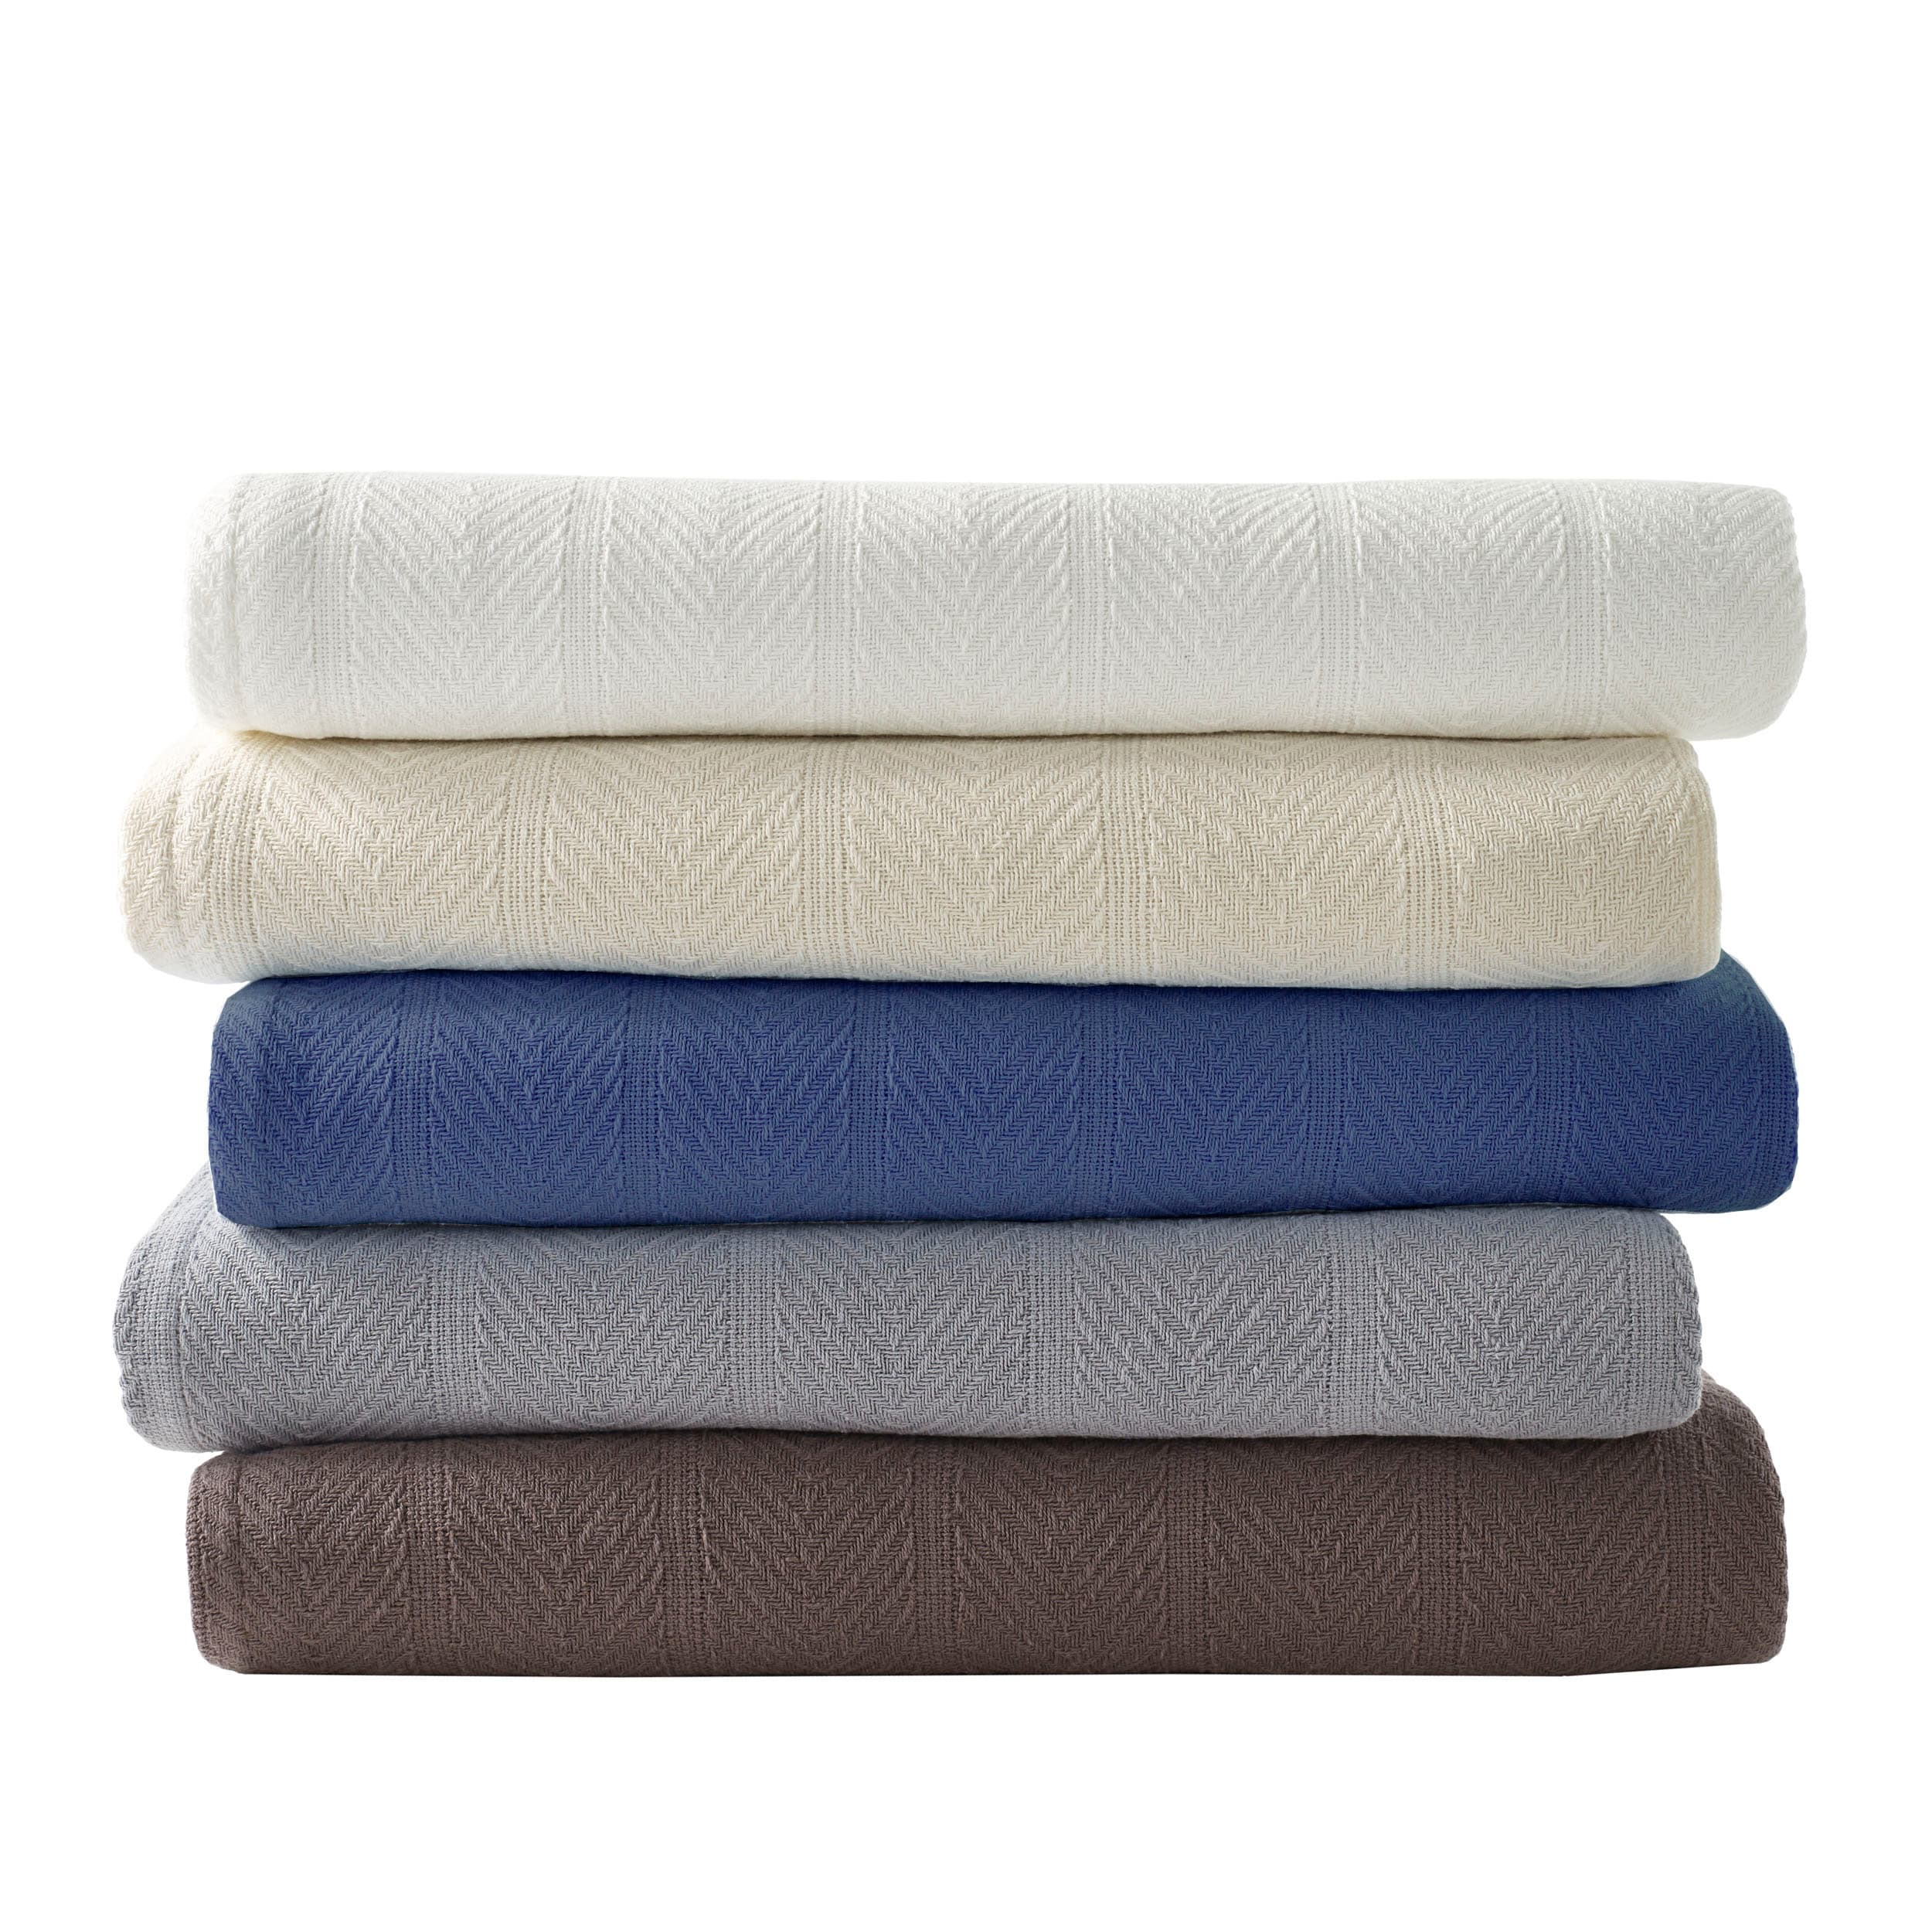 Ed Bauer Herringbone Cotton Blanket Free Shipping Orders